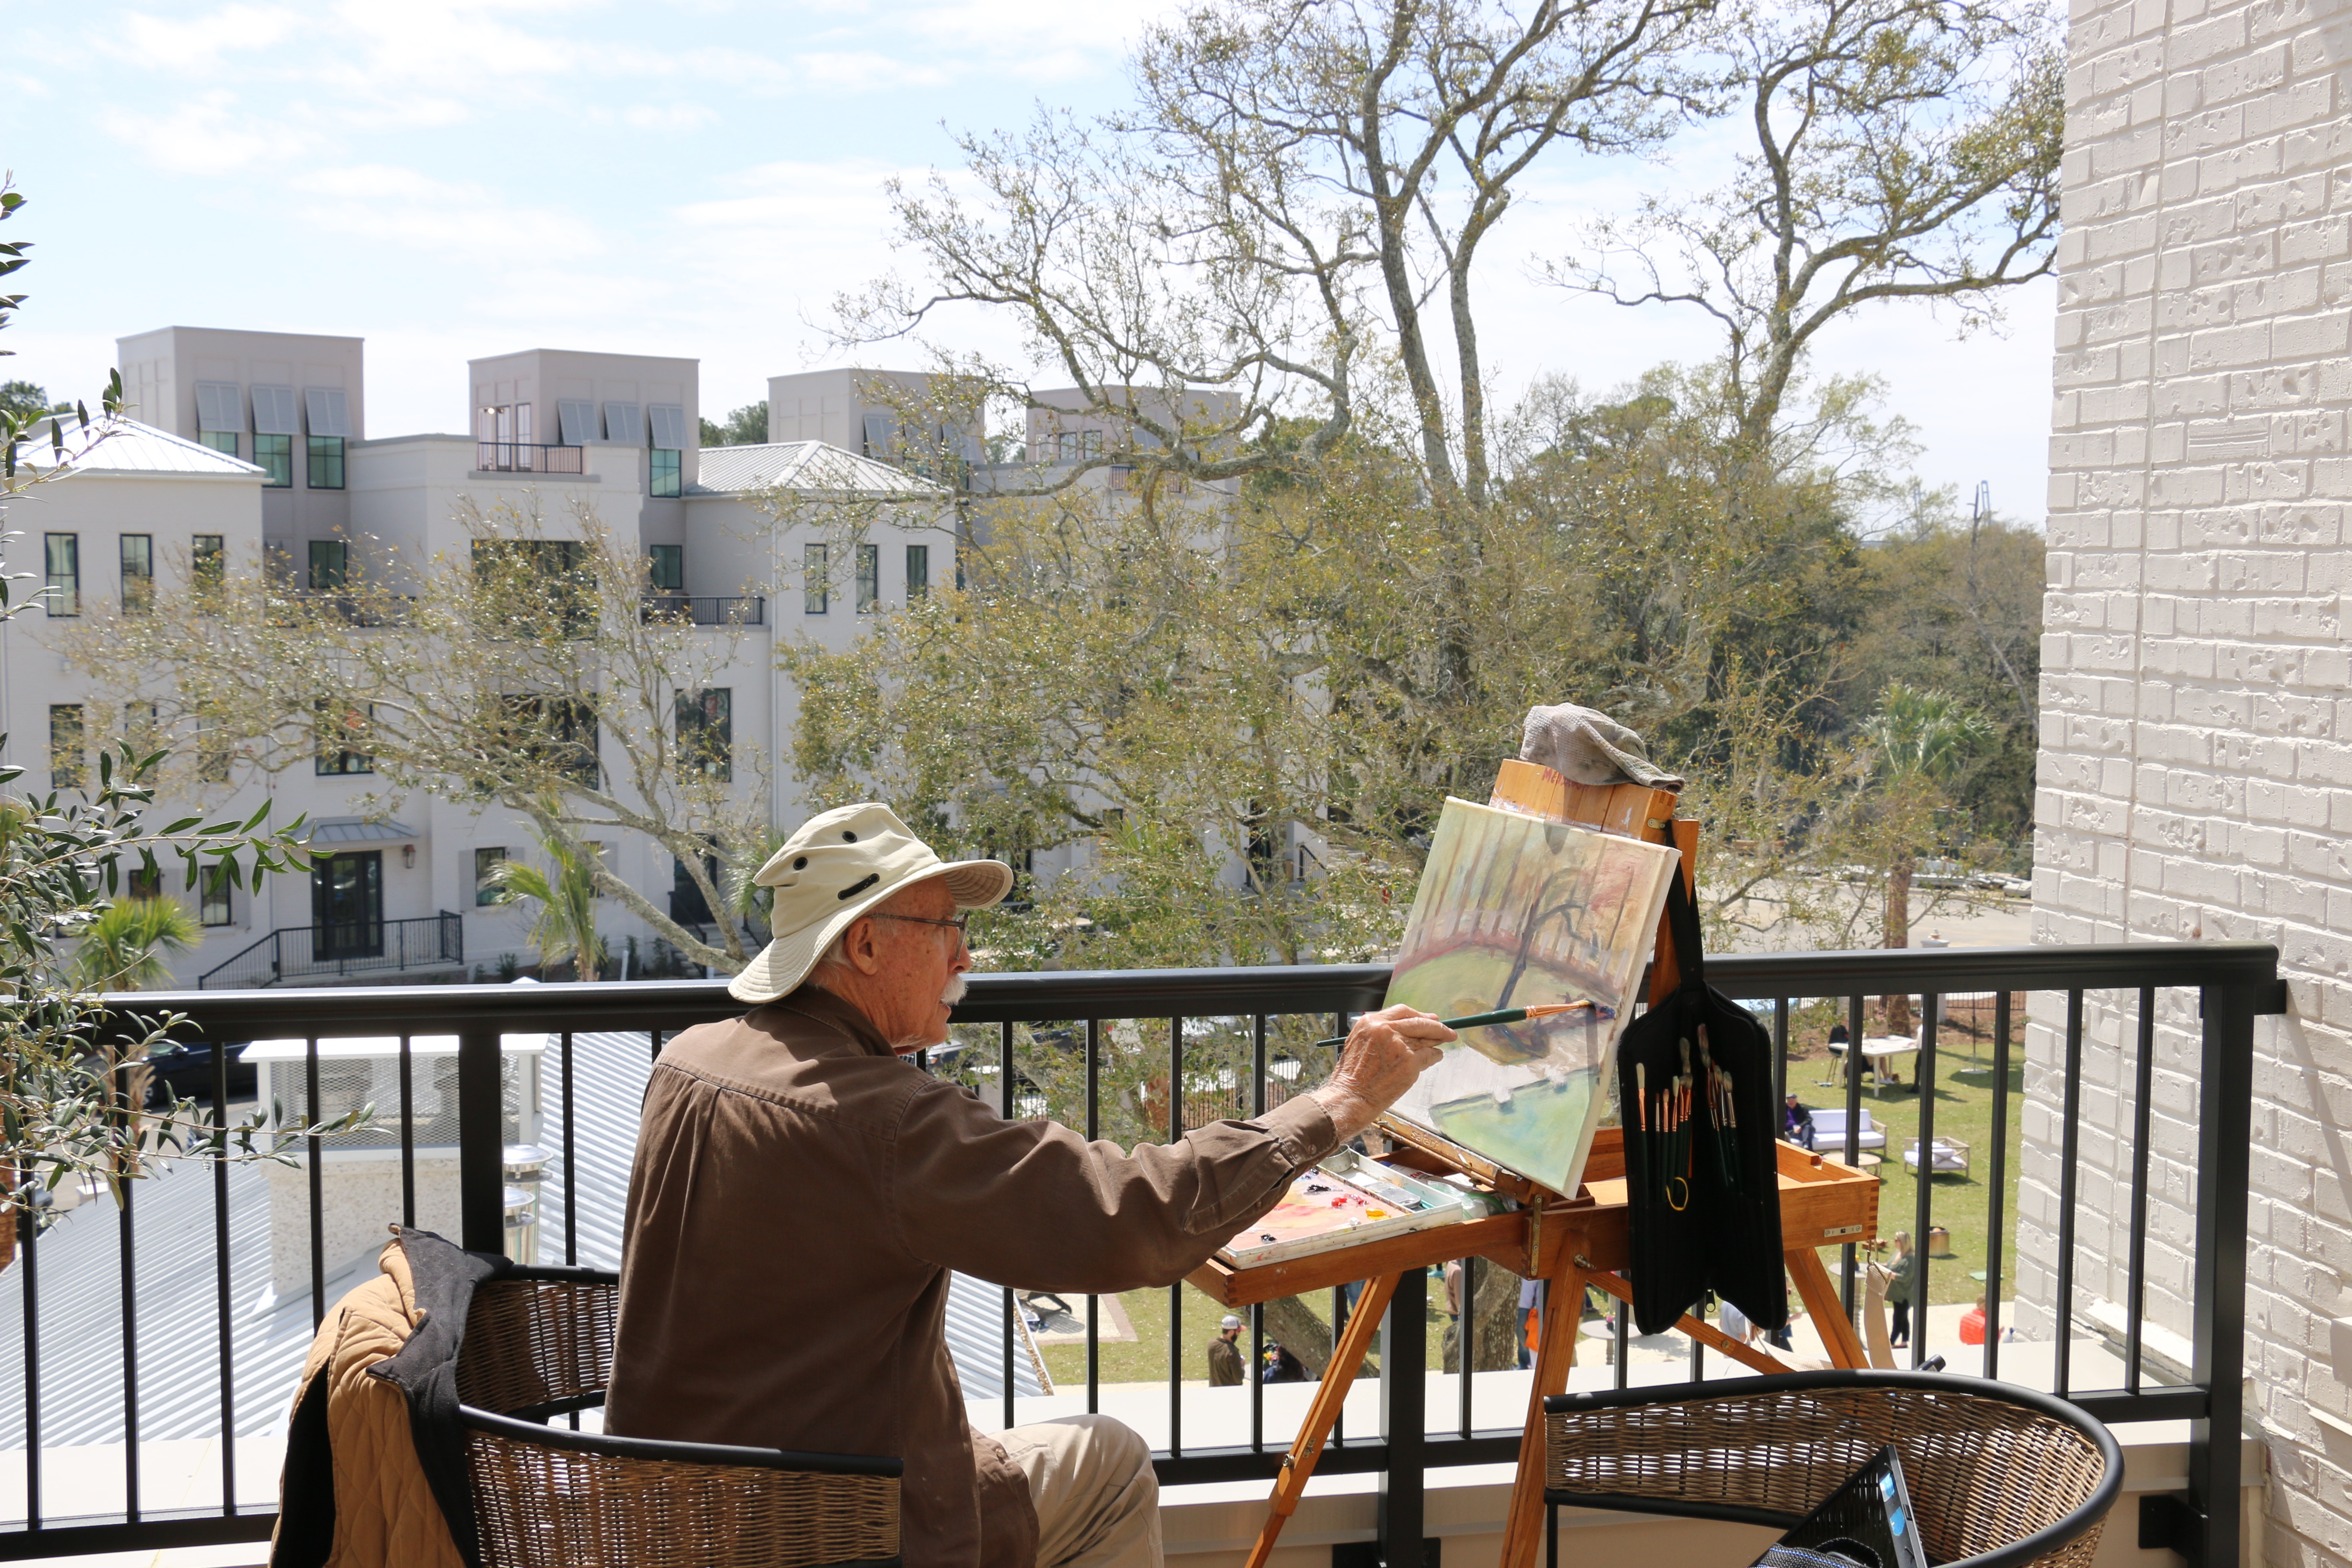 Artist Thomas Meddaugh (tmmart.net) of the Mount Pleasant Artists Guild painted a scene while overlooking the festivities of Waterfest from a balcony.